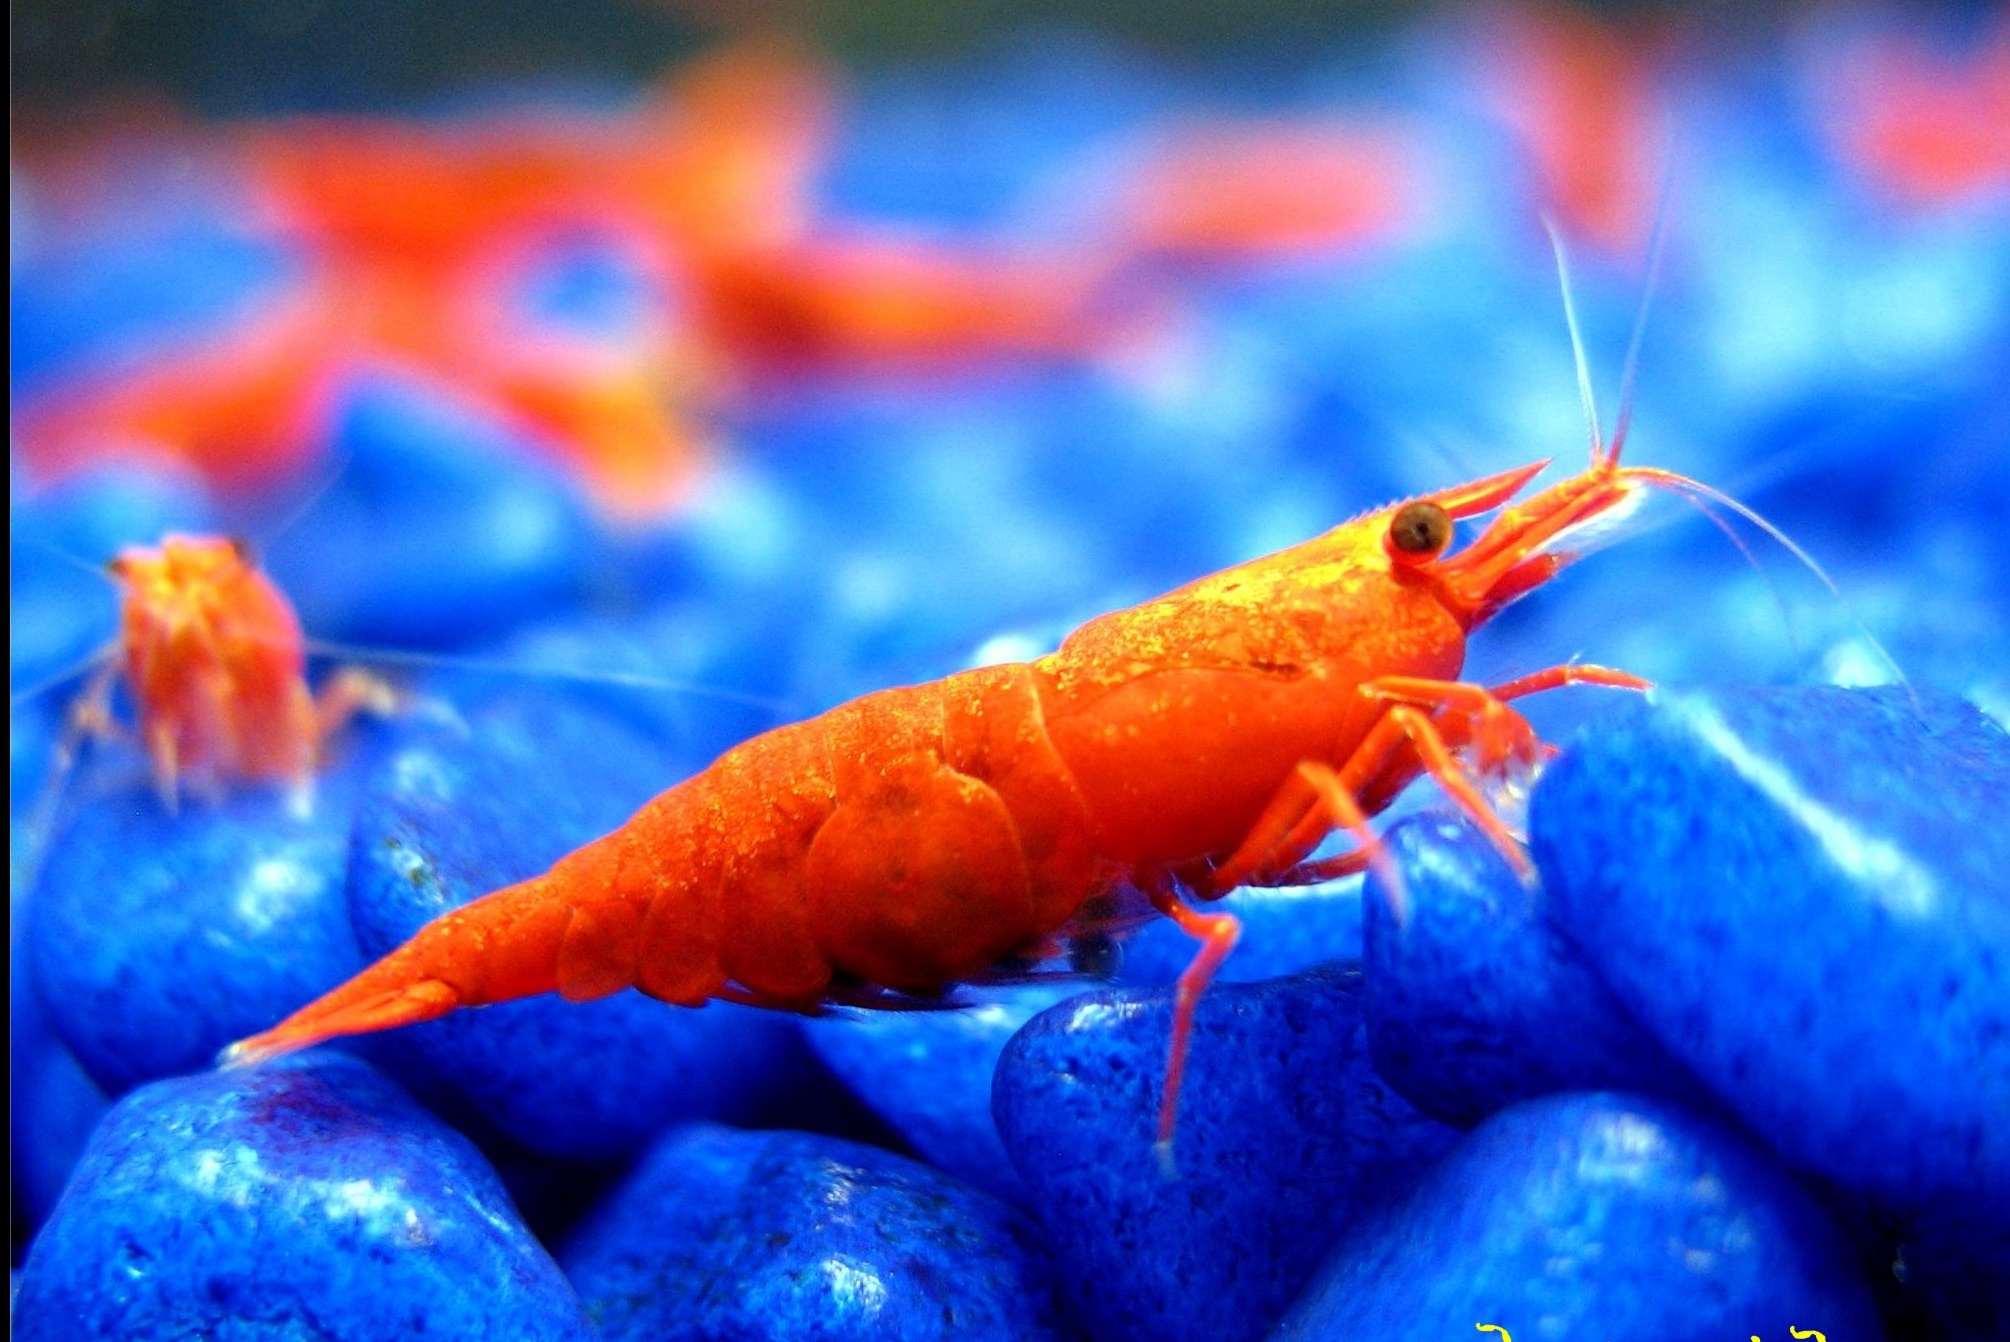 pictures of live shrimp on animal picture society